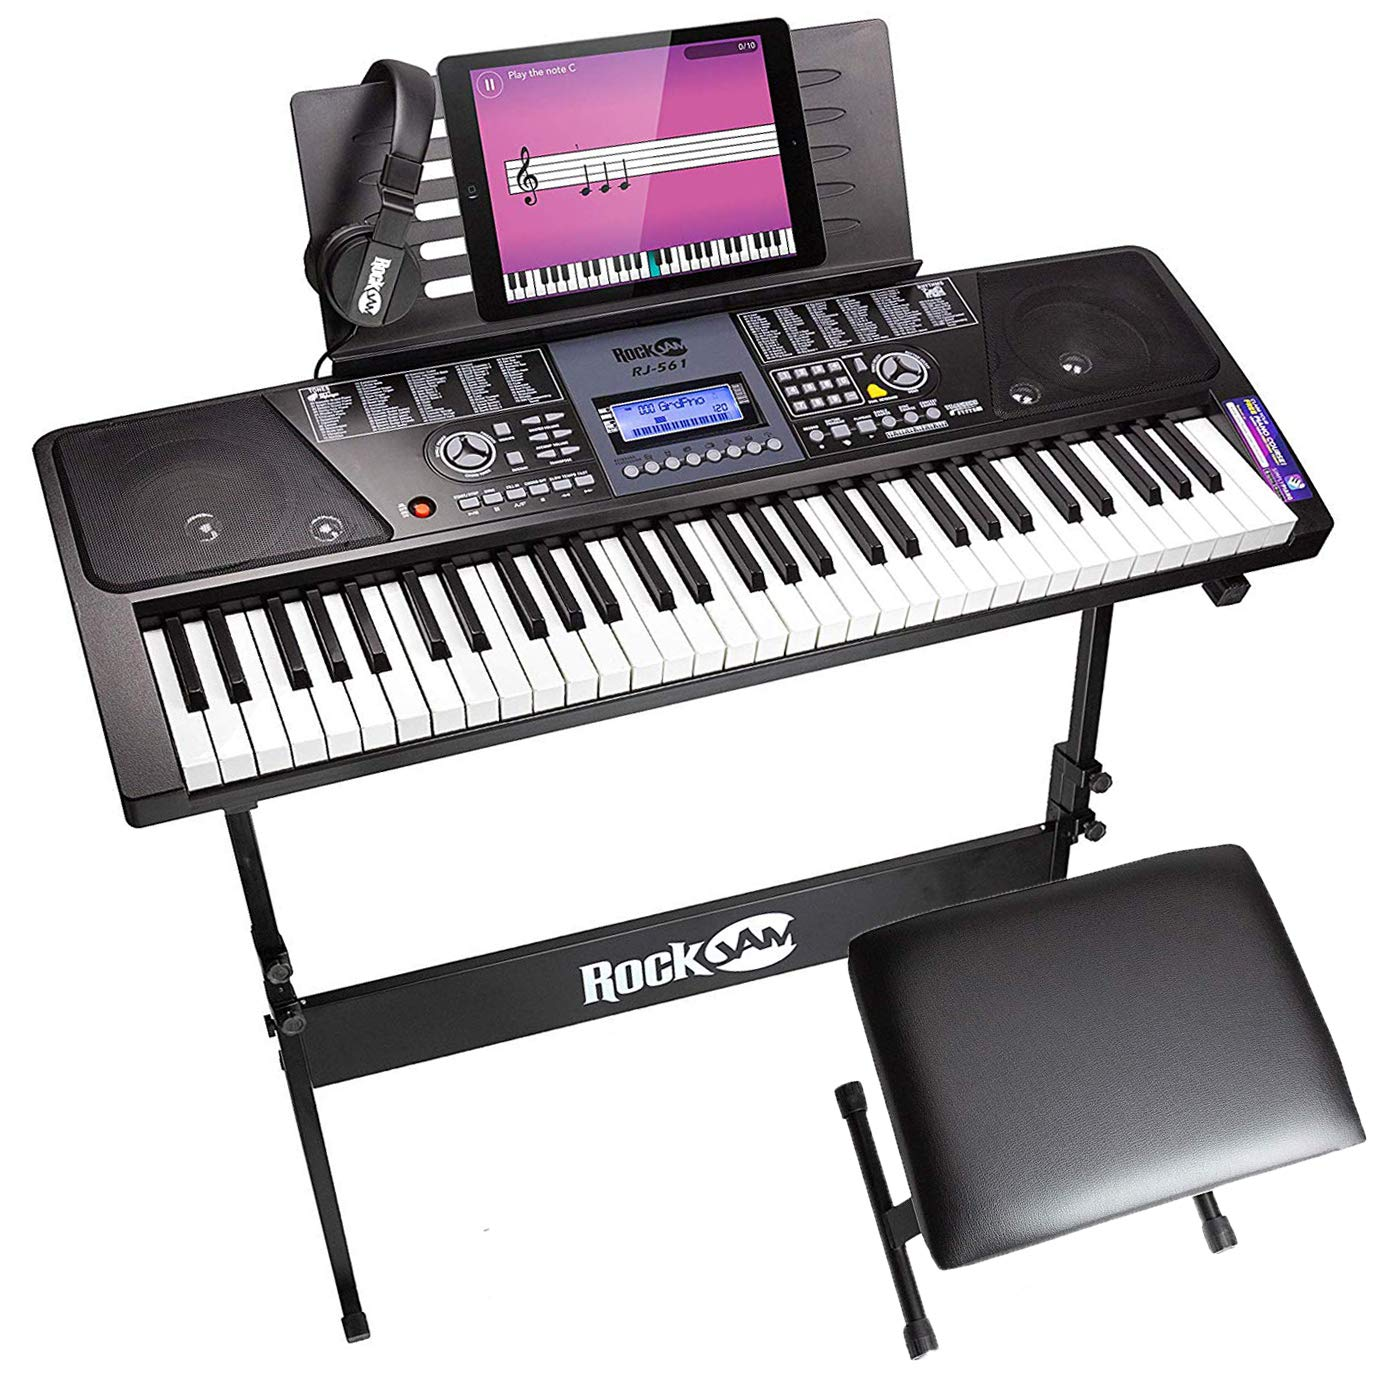 RockJam 61-Key Electronic Keyboard Piano SuperKit with Stand, Stool, Headphones & Power Supply, Black - RJ561 by RockJam